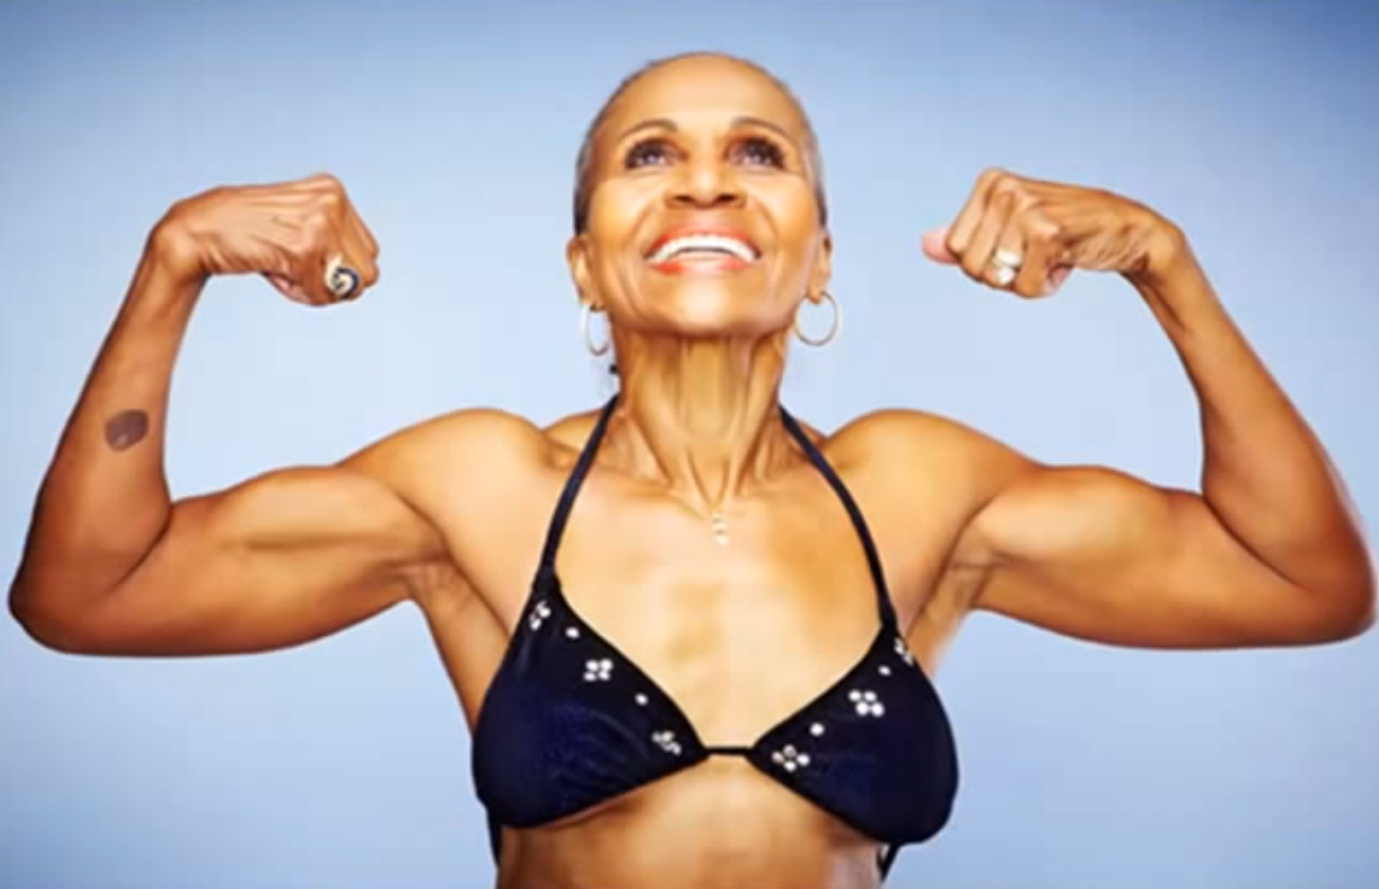 Meet The World's Oldest Body-Builder: 80 Year Old